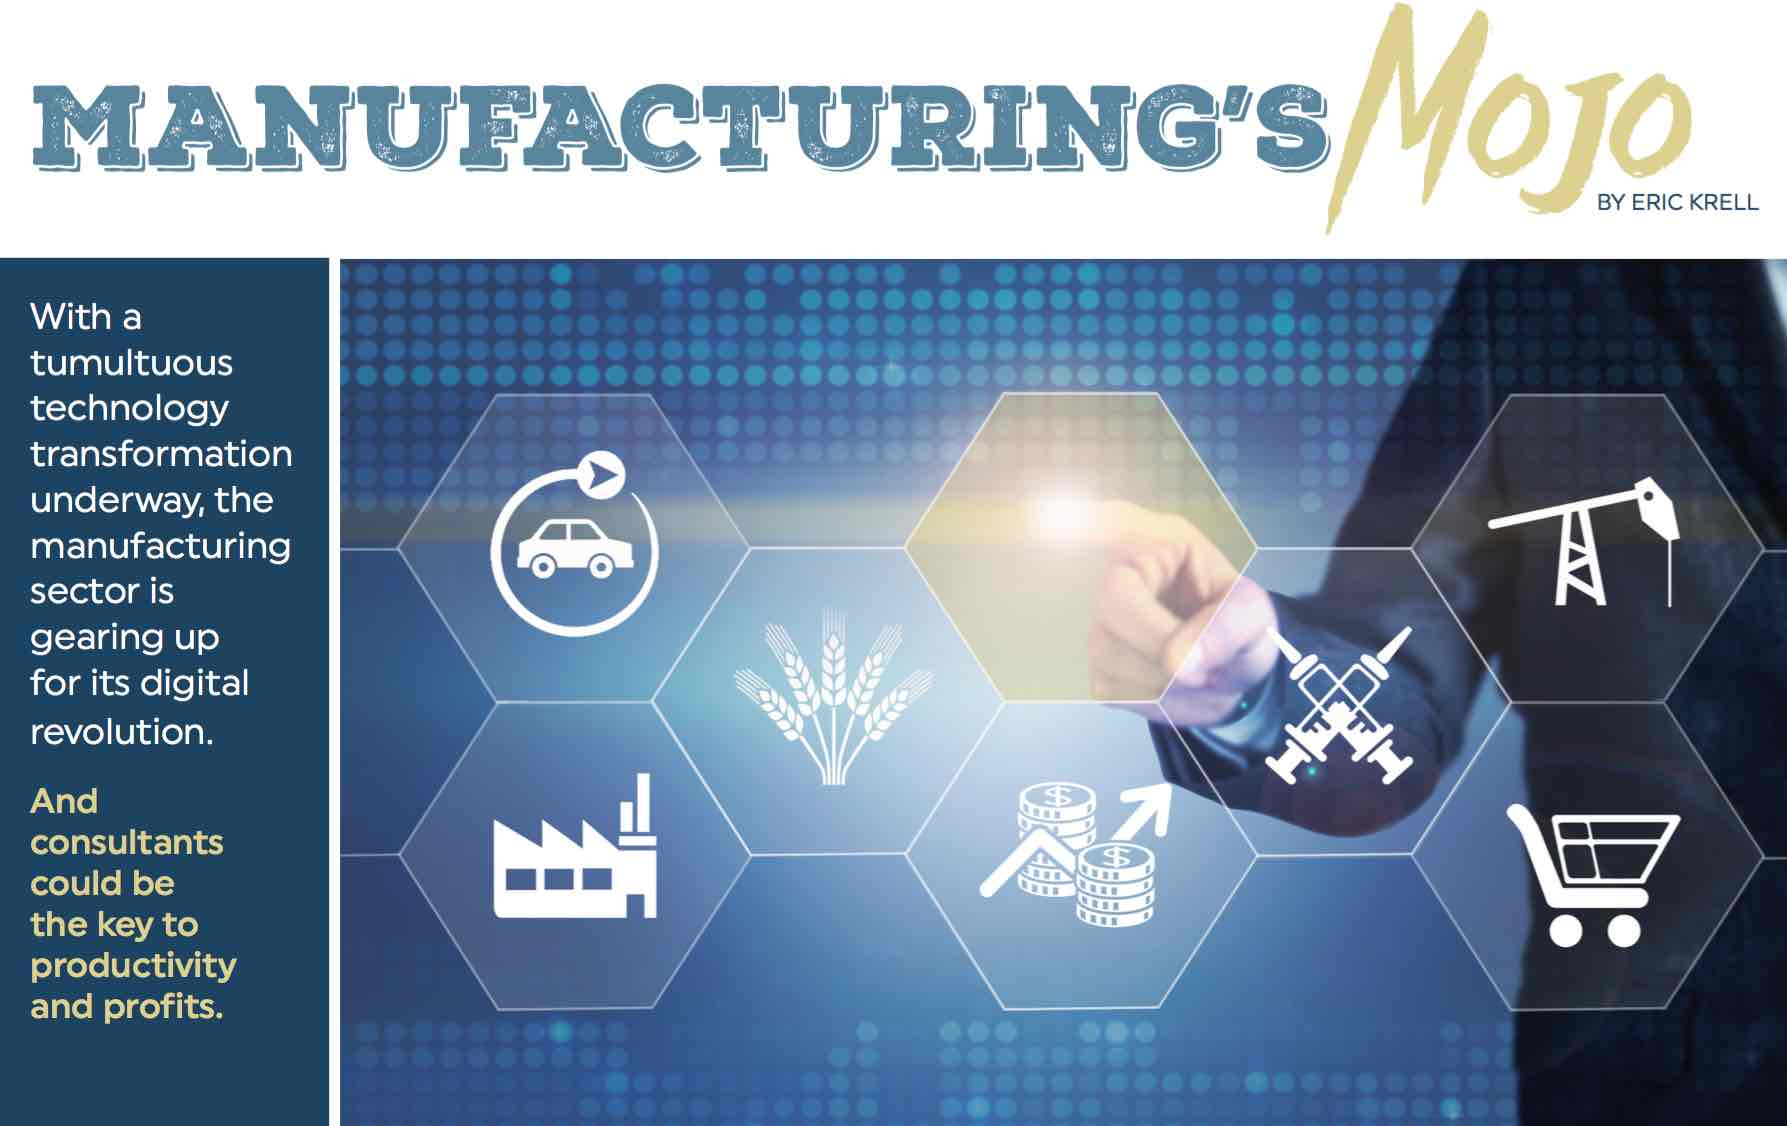 Manufacturing's Mojo